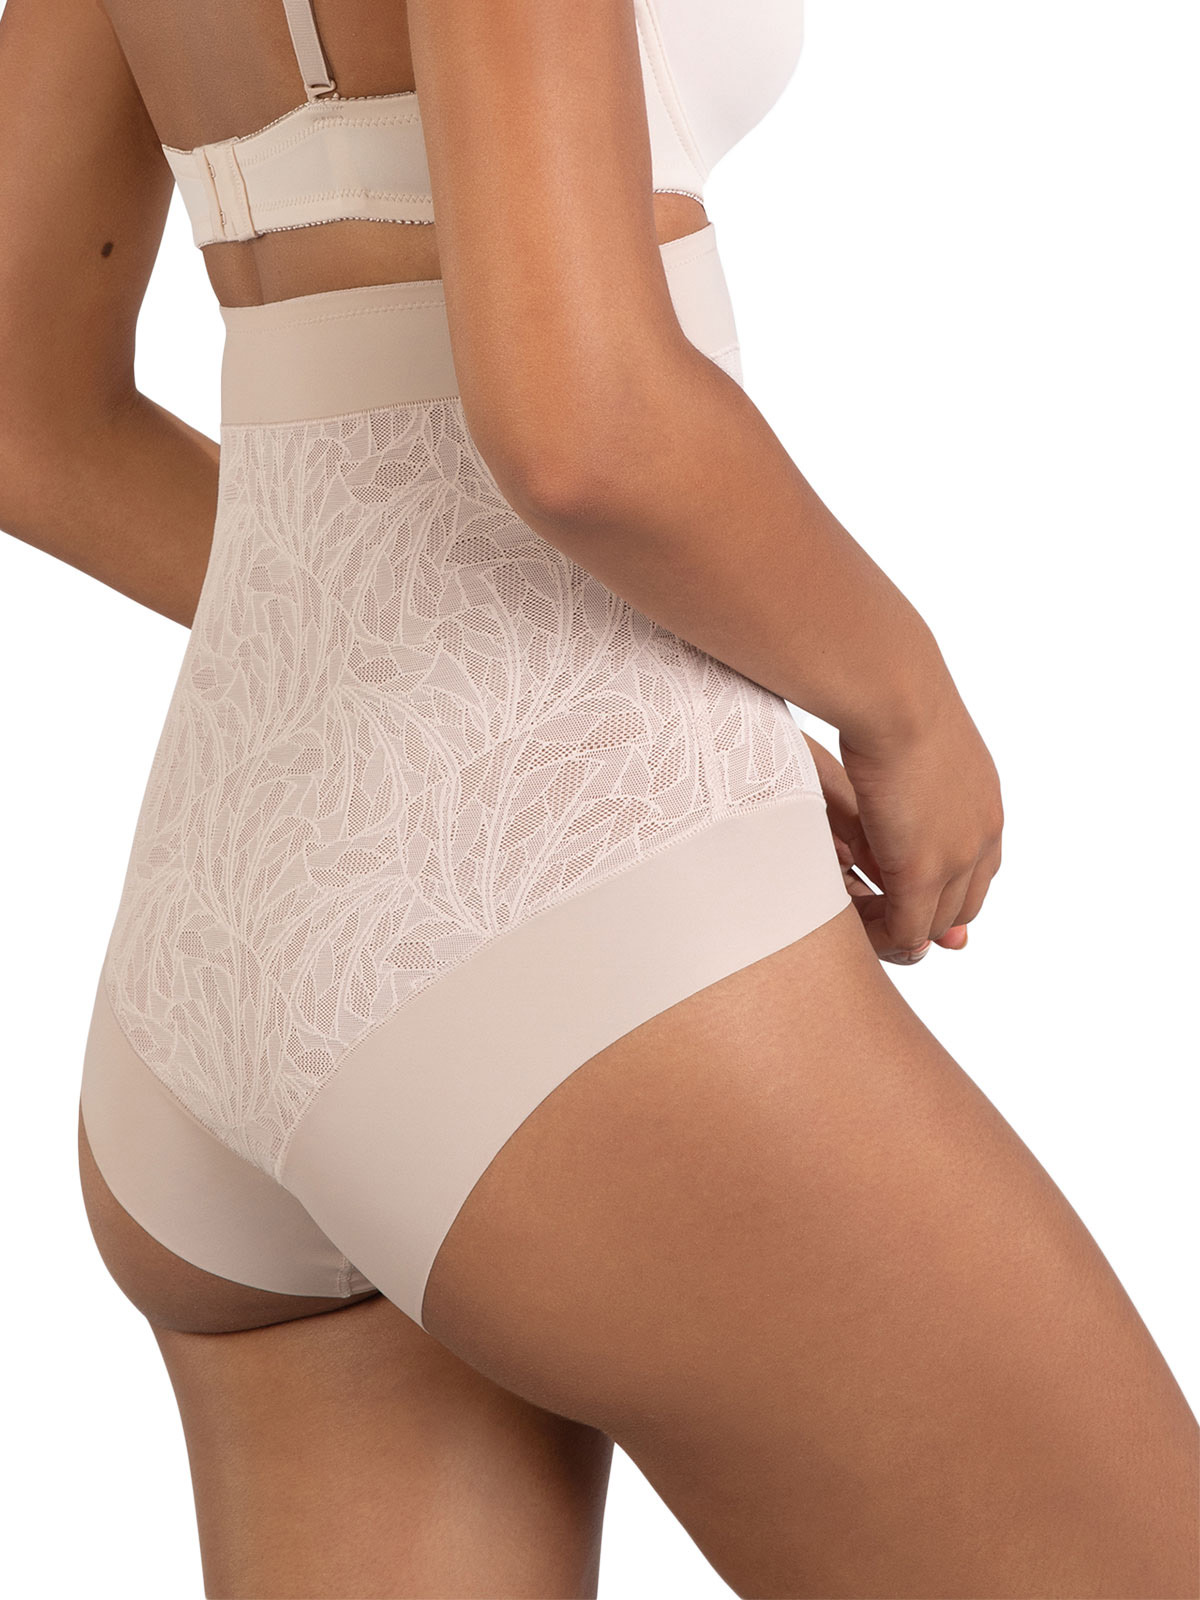 High-Waist Panty Girdle 0280